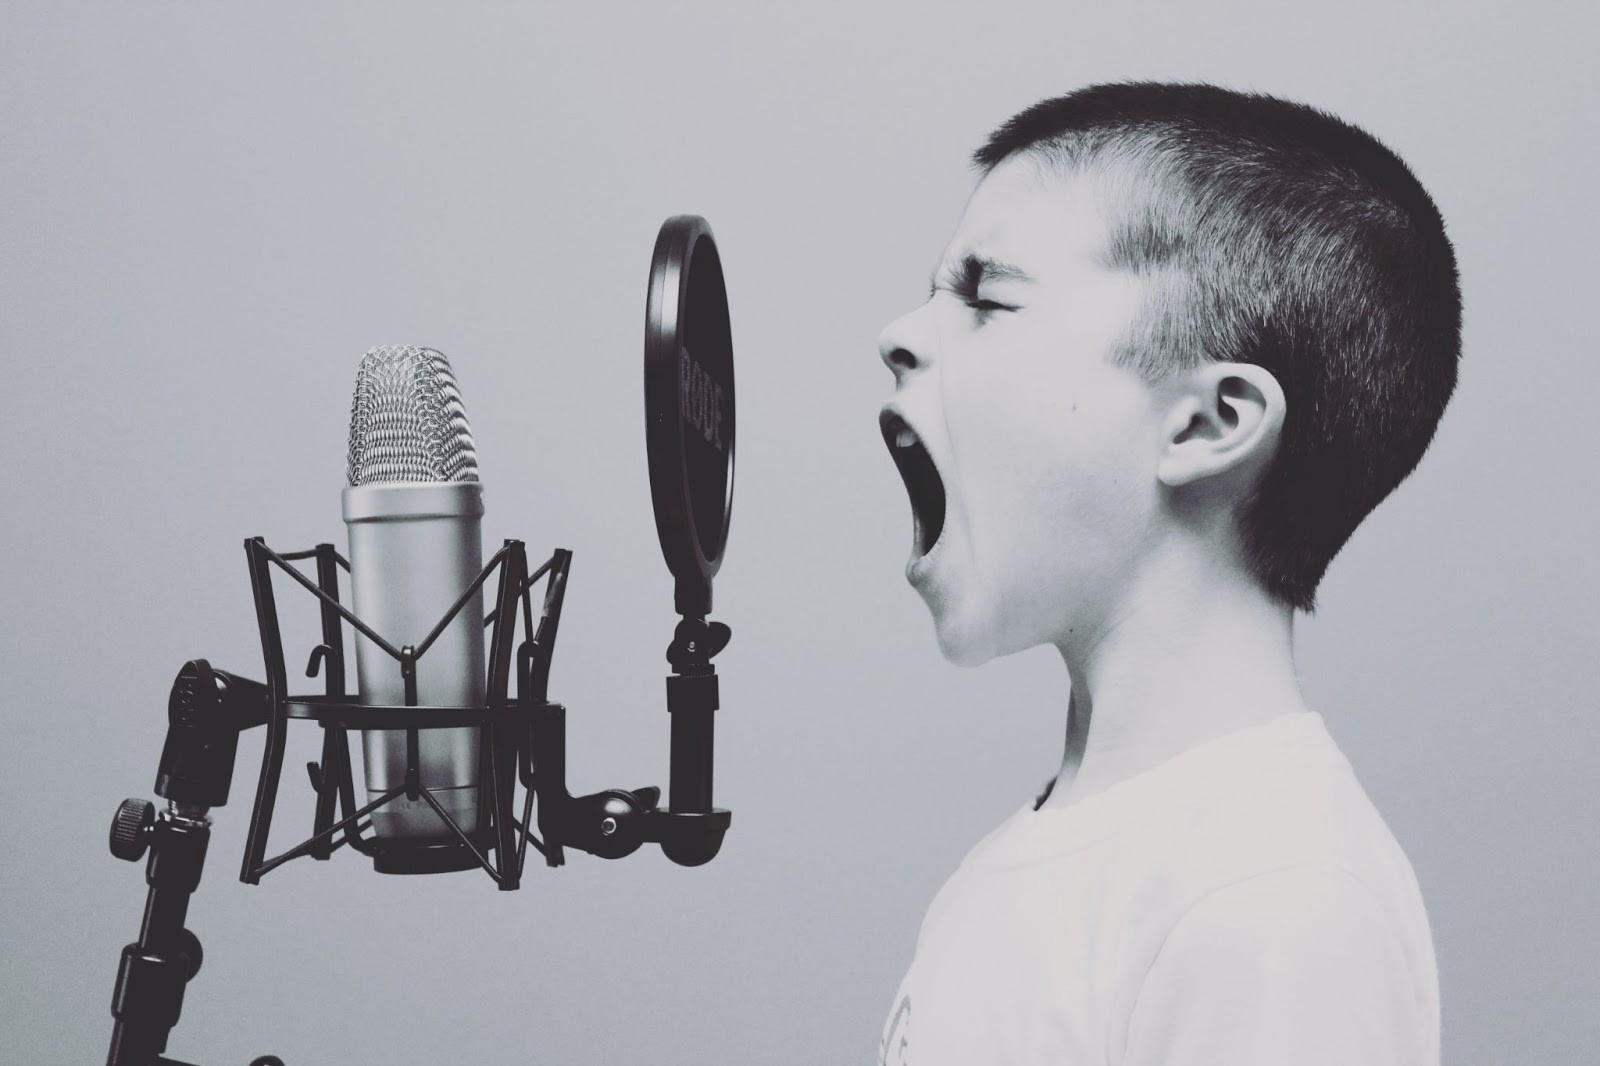 Black and white photo of a young boy with short hair screaming into a large microphone.